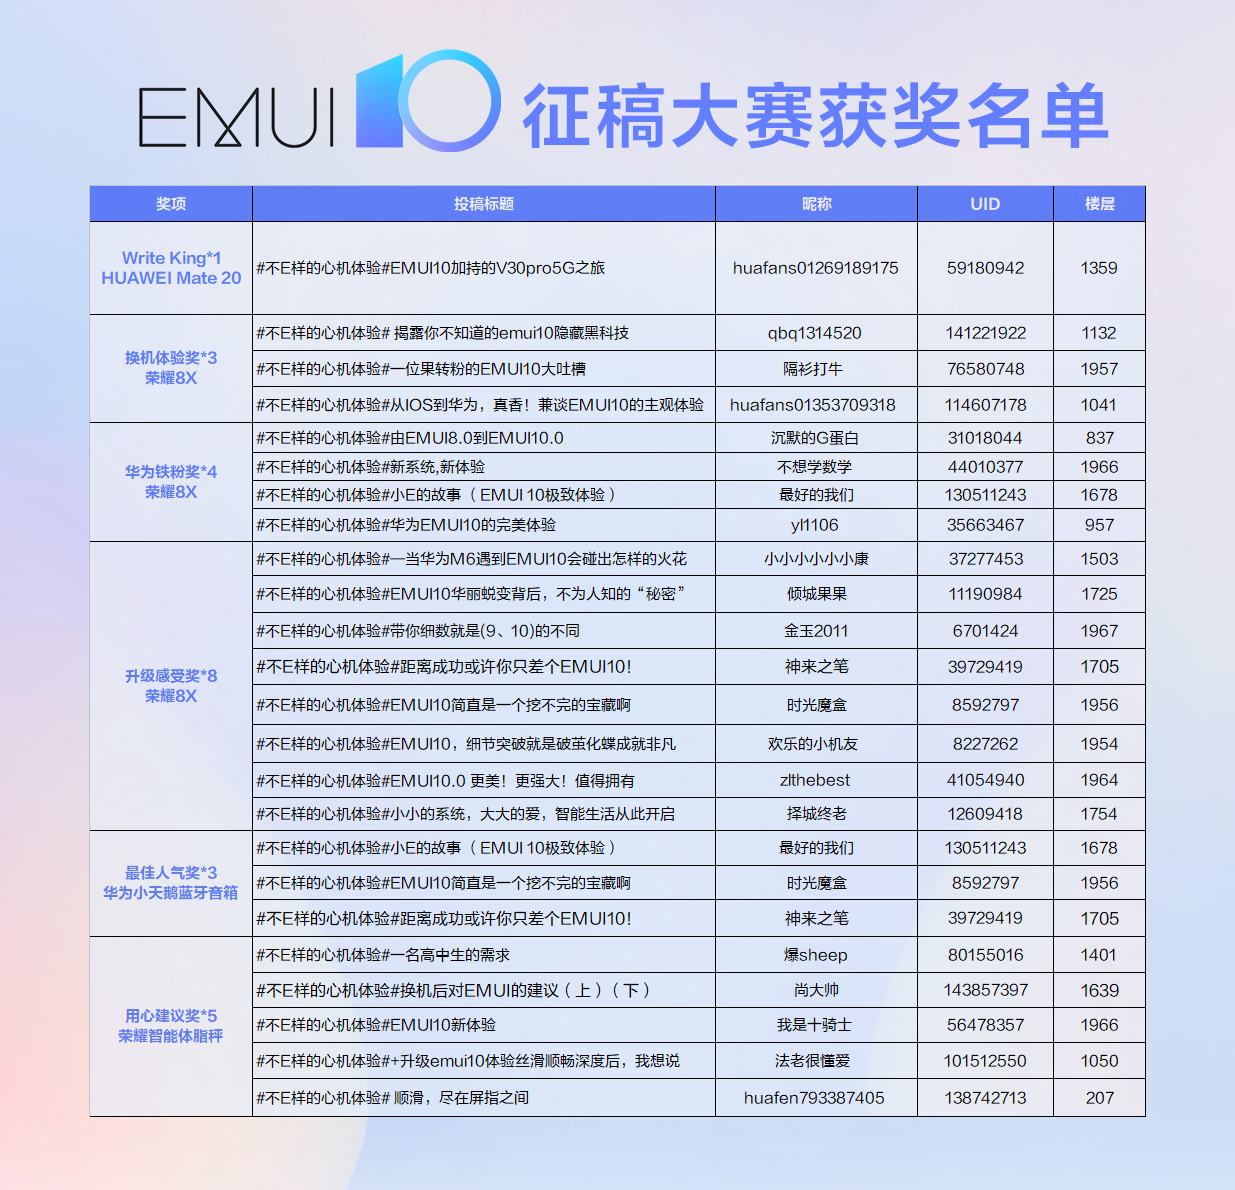 EMUI10 Call for Papers